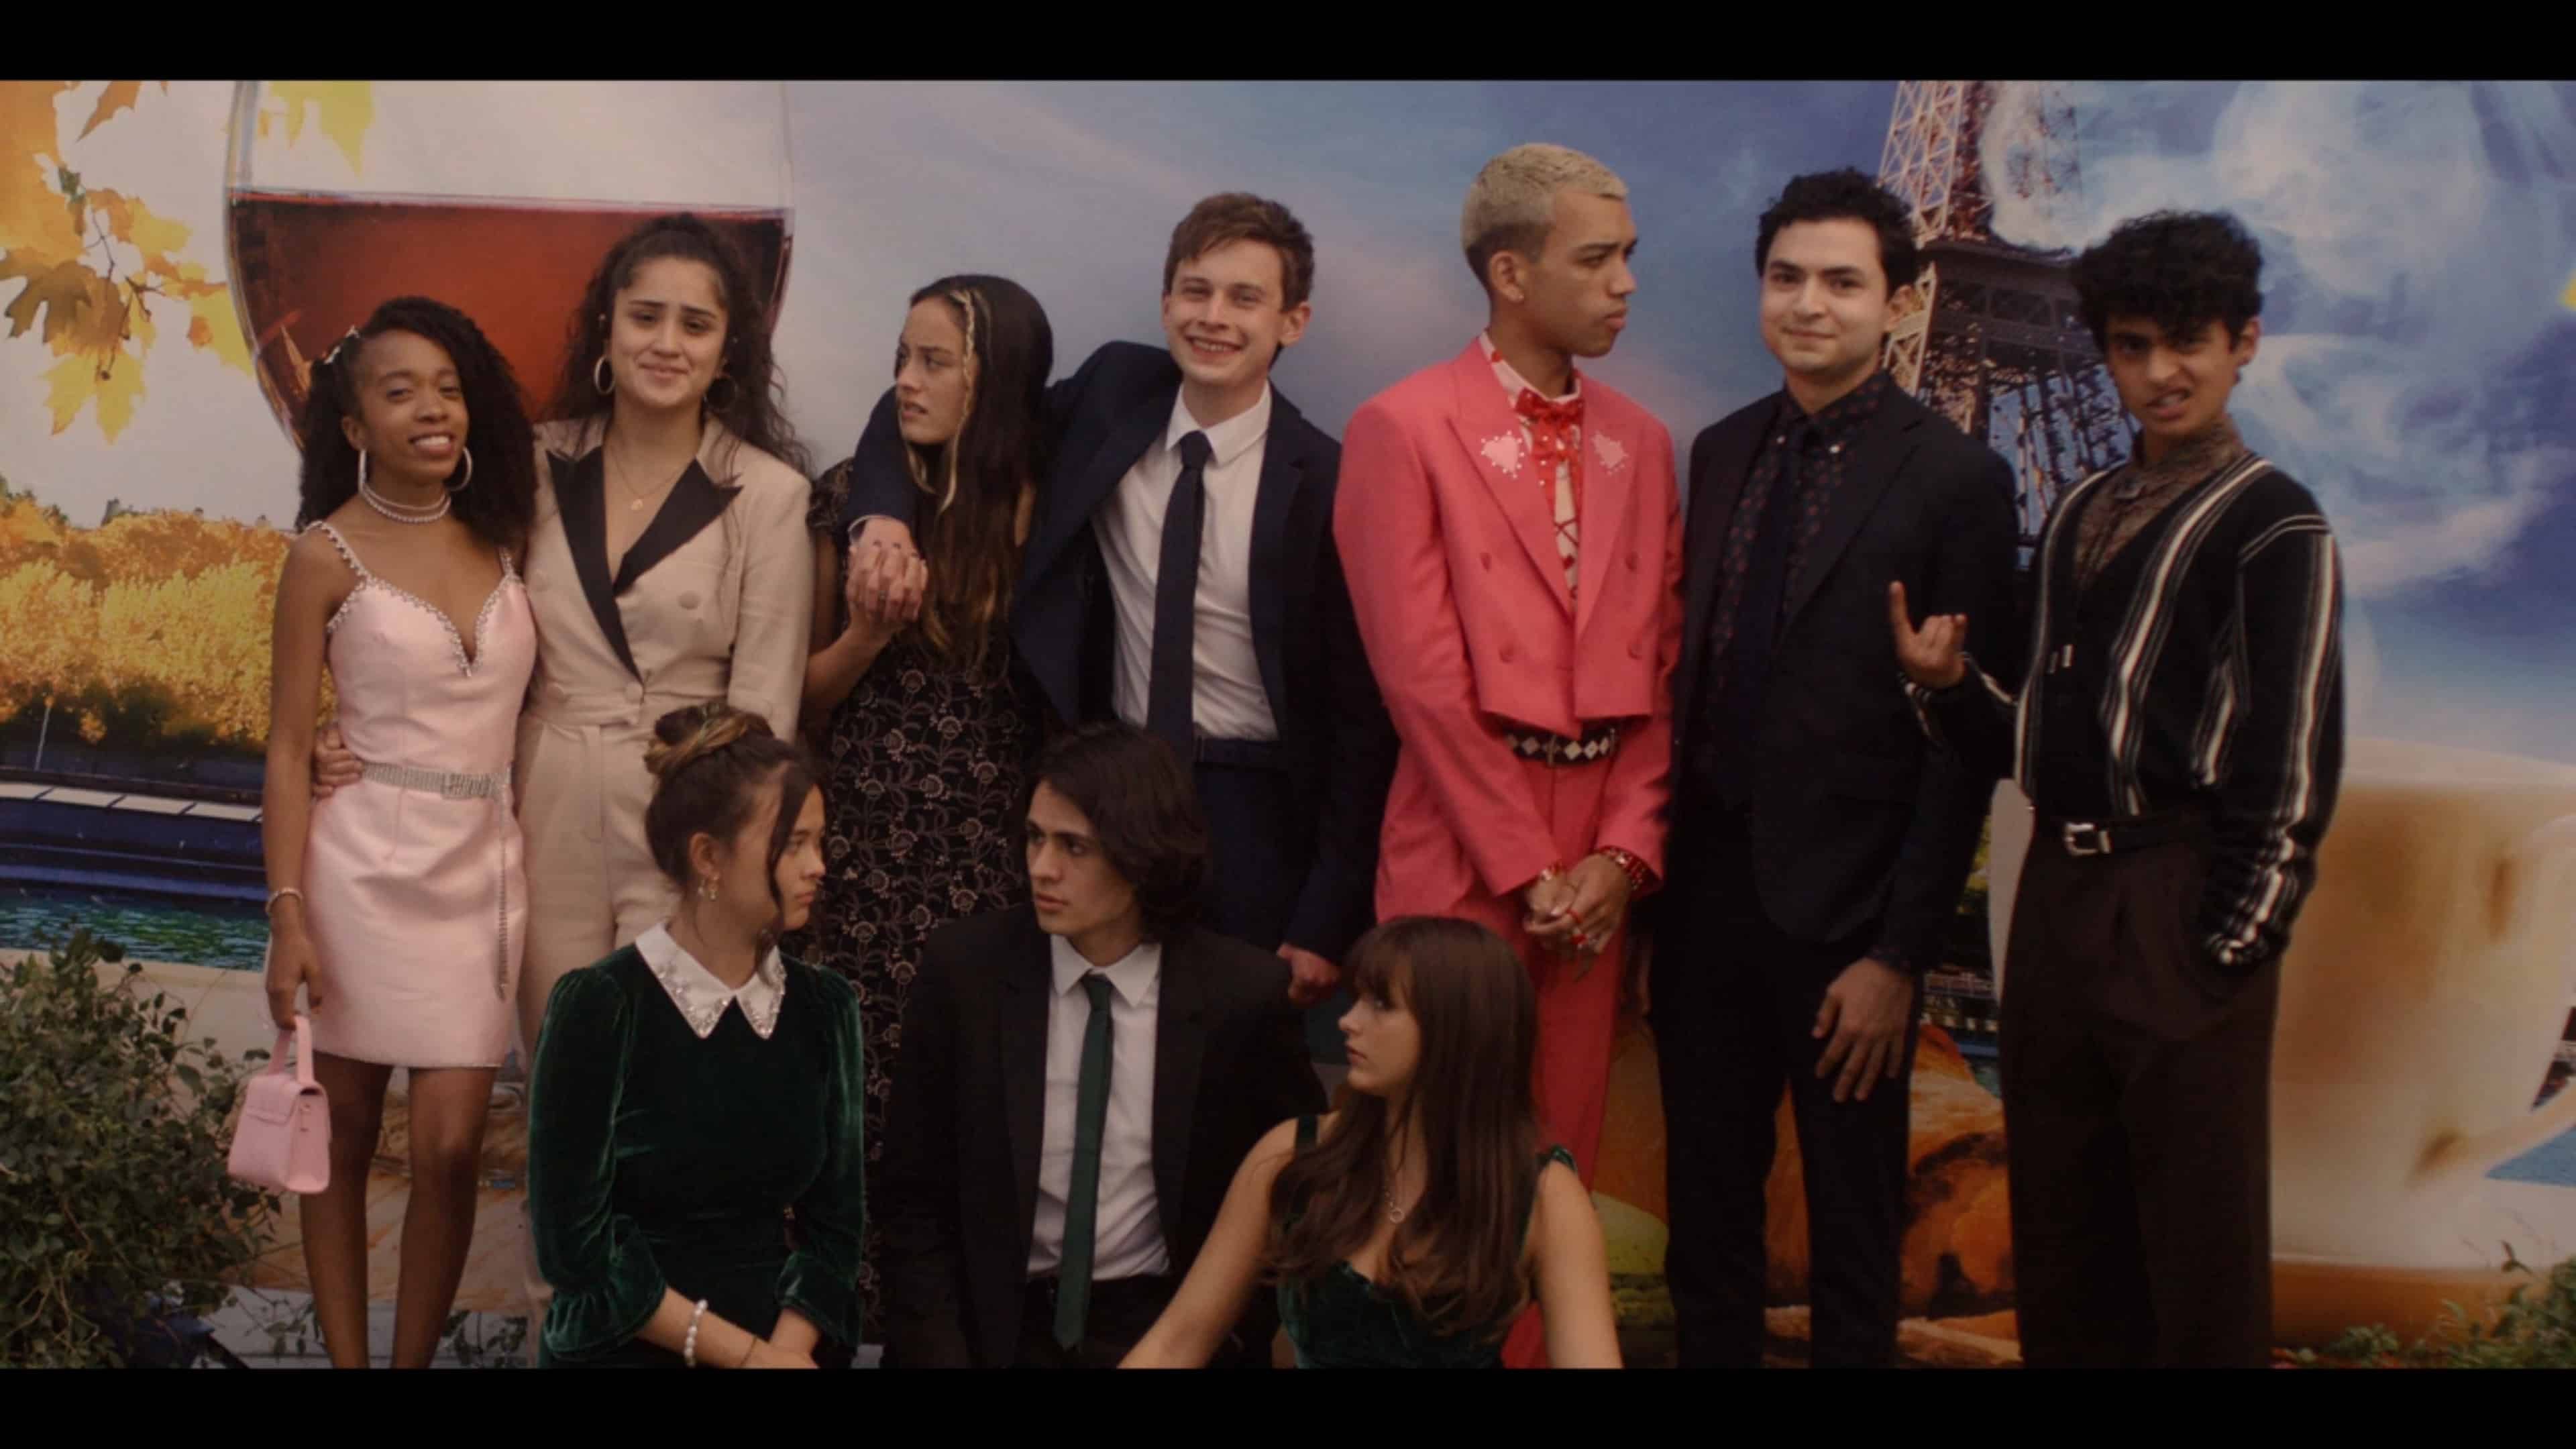 Arianna, Greta, Riley, Nathan, Chester, Bo, J, Delilah, Cooper, and Naomi taking a picture together